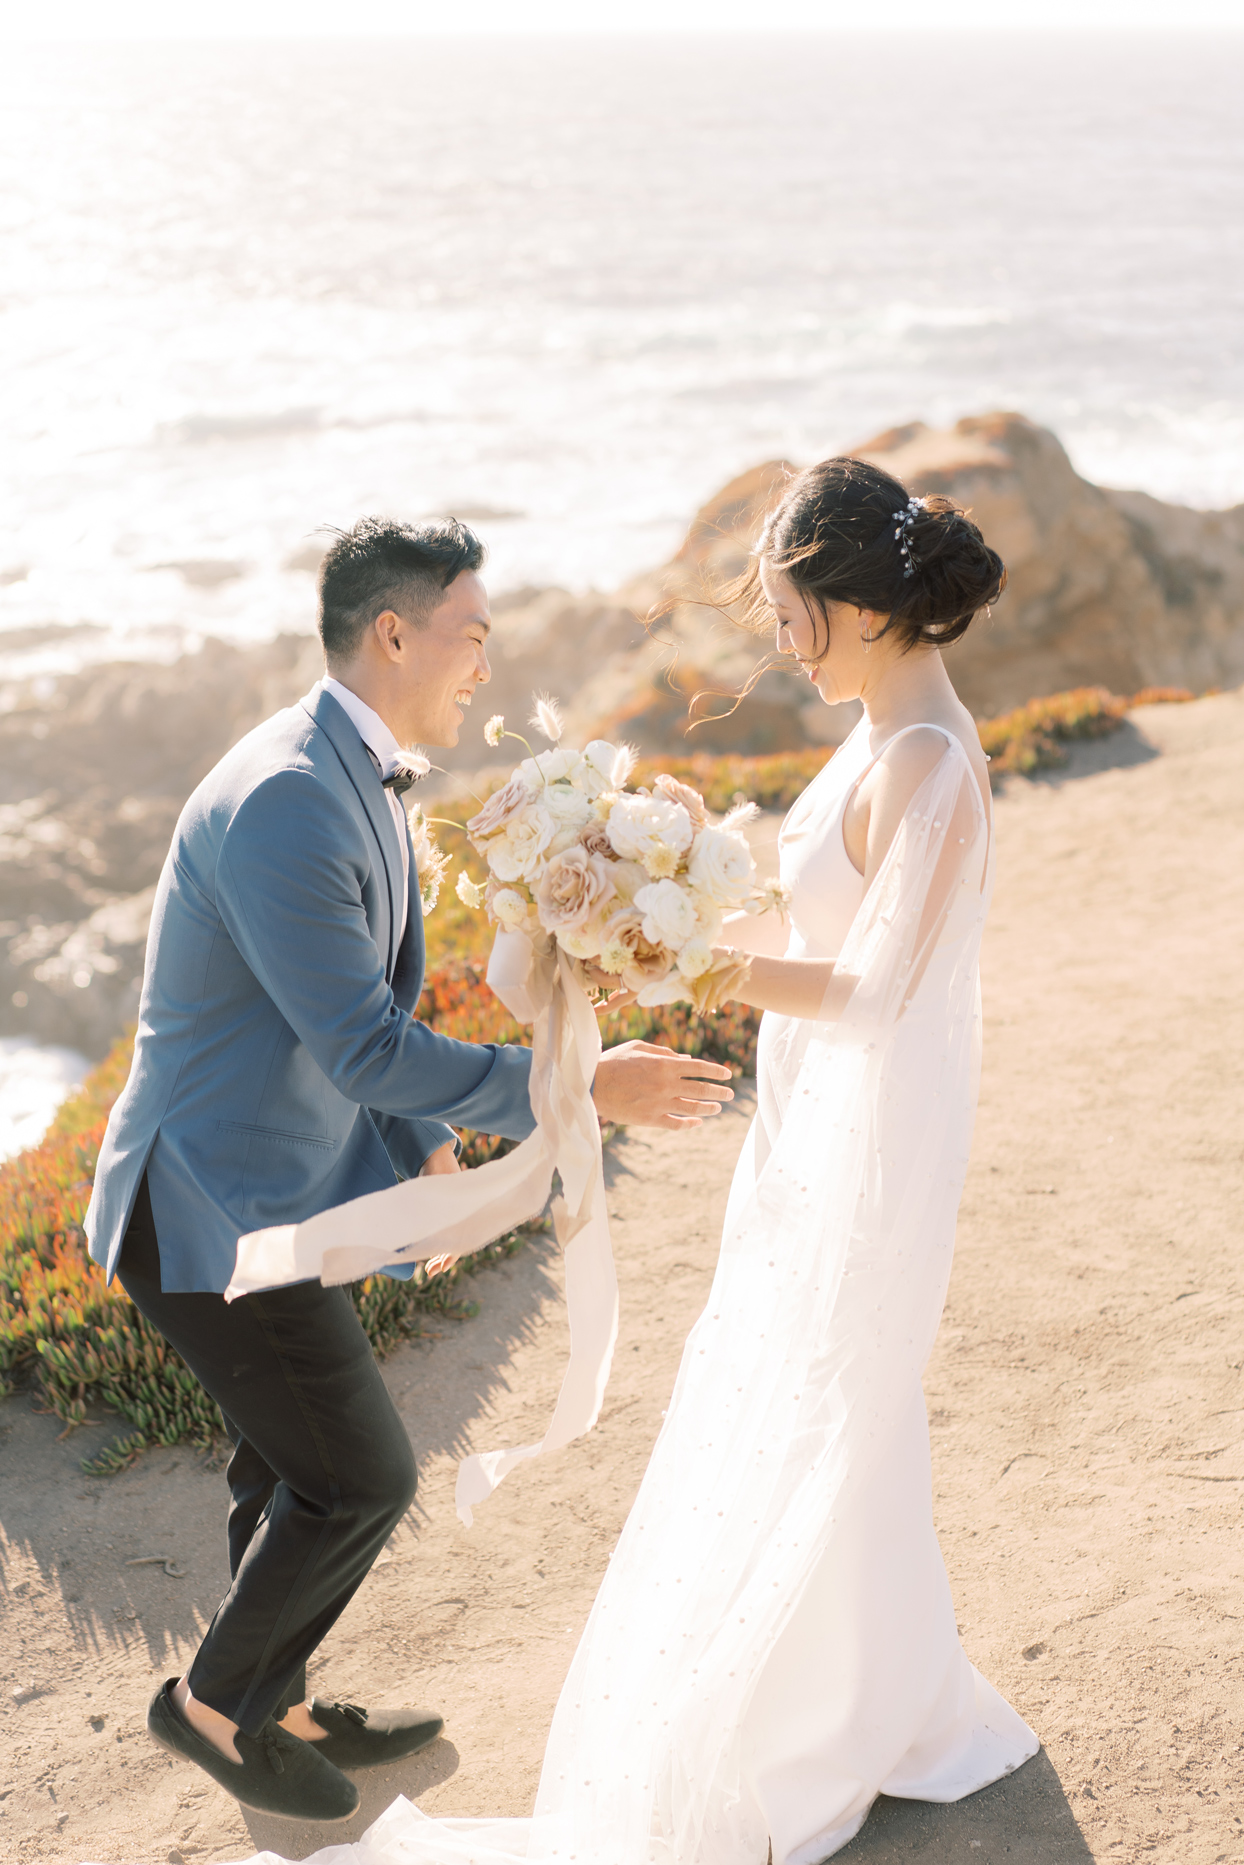 Groom and bride smiling with flower bouquet